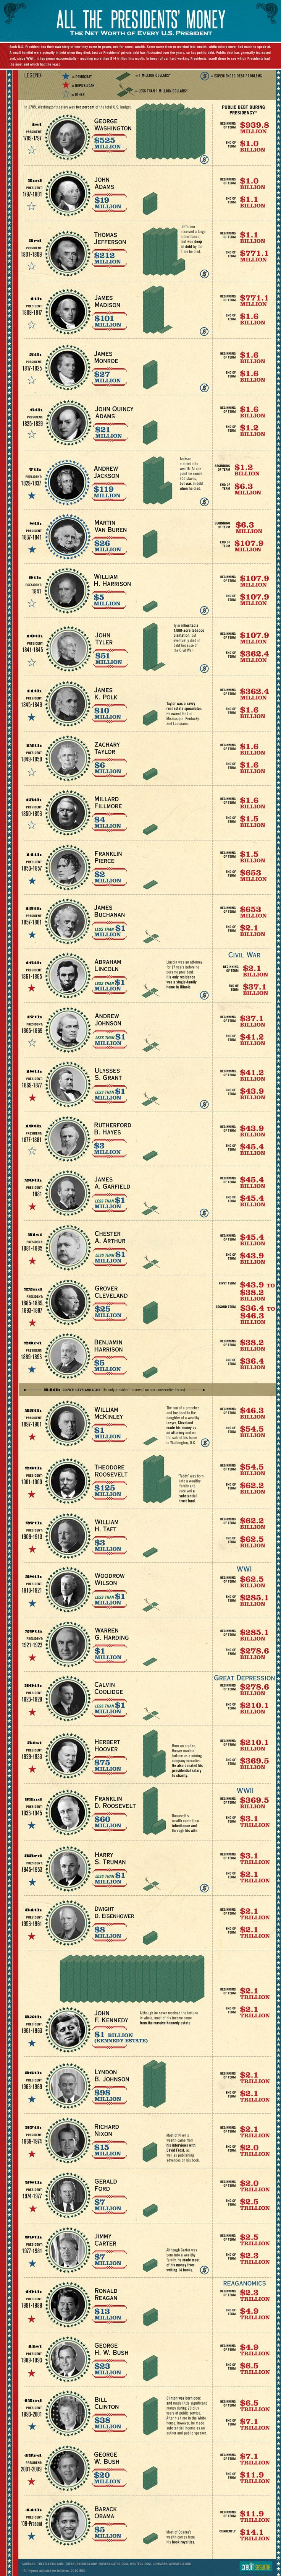 best ideas about presidents on money all u s president have their own story of how they came to power and for